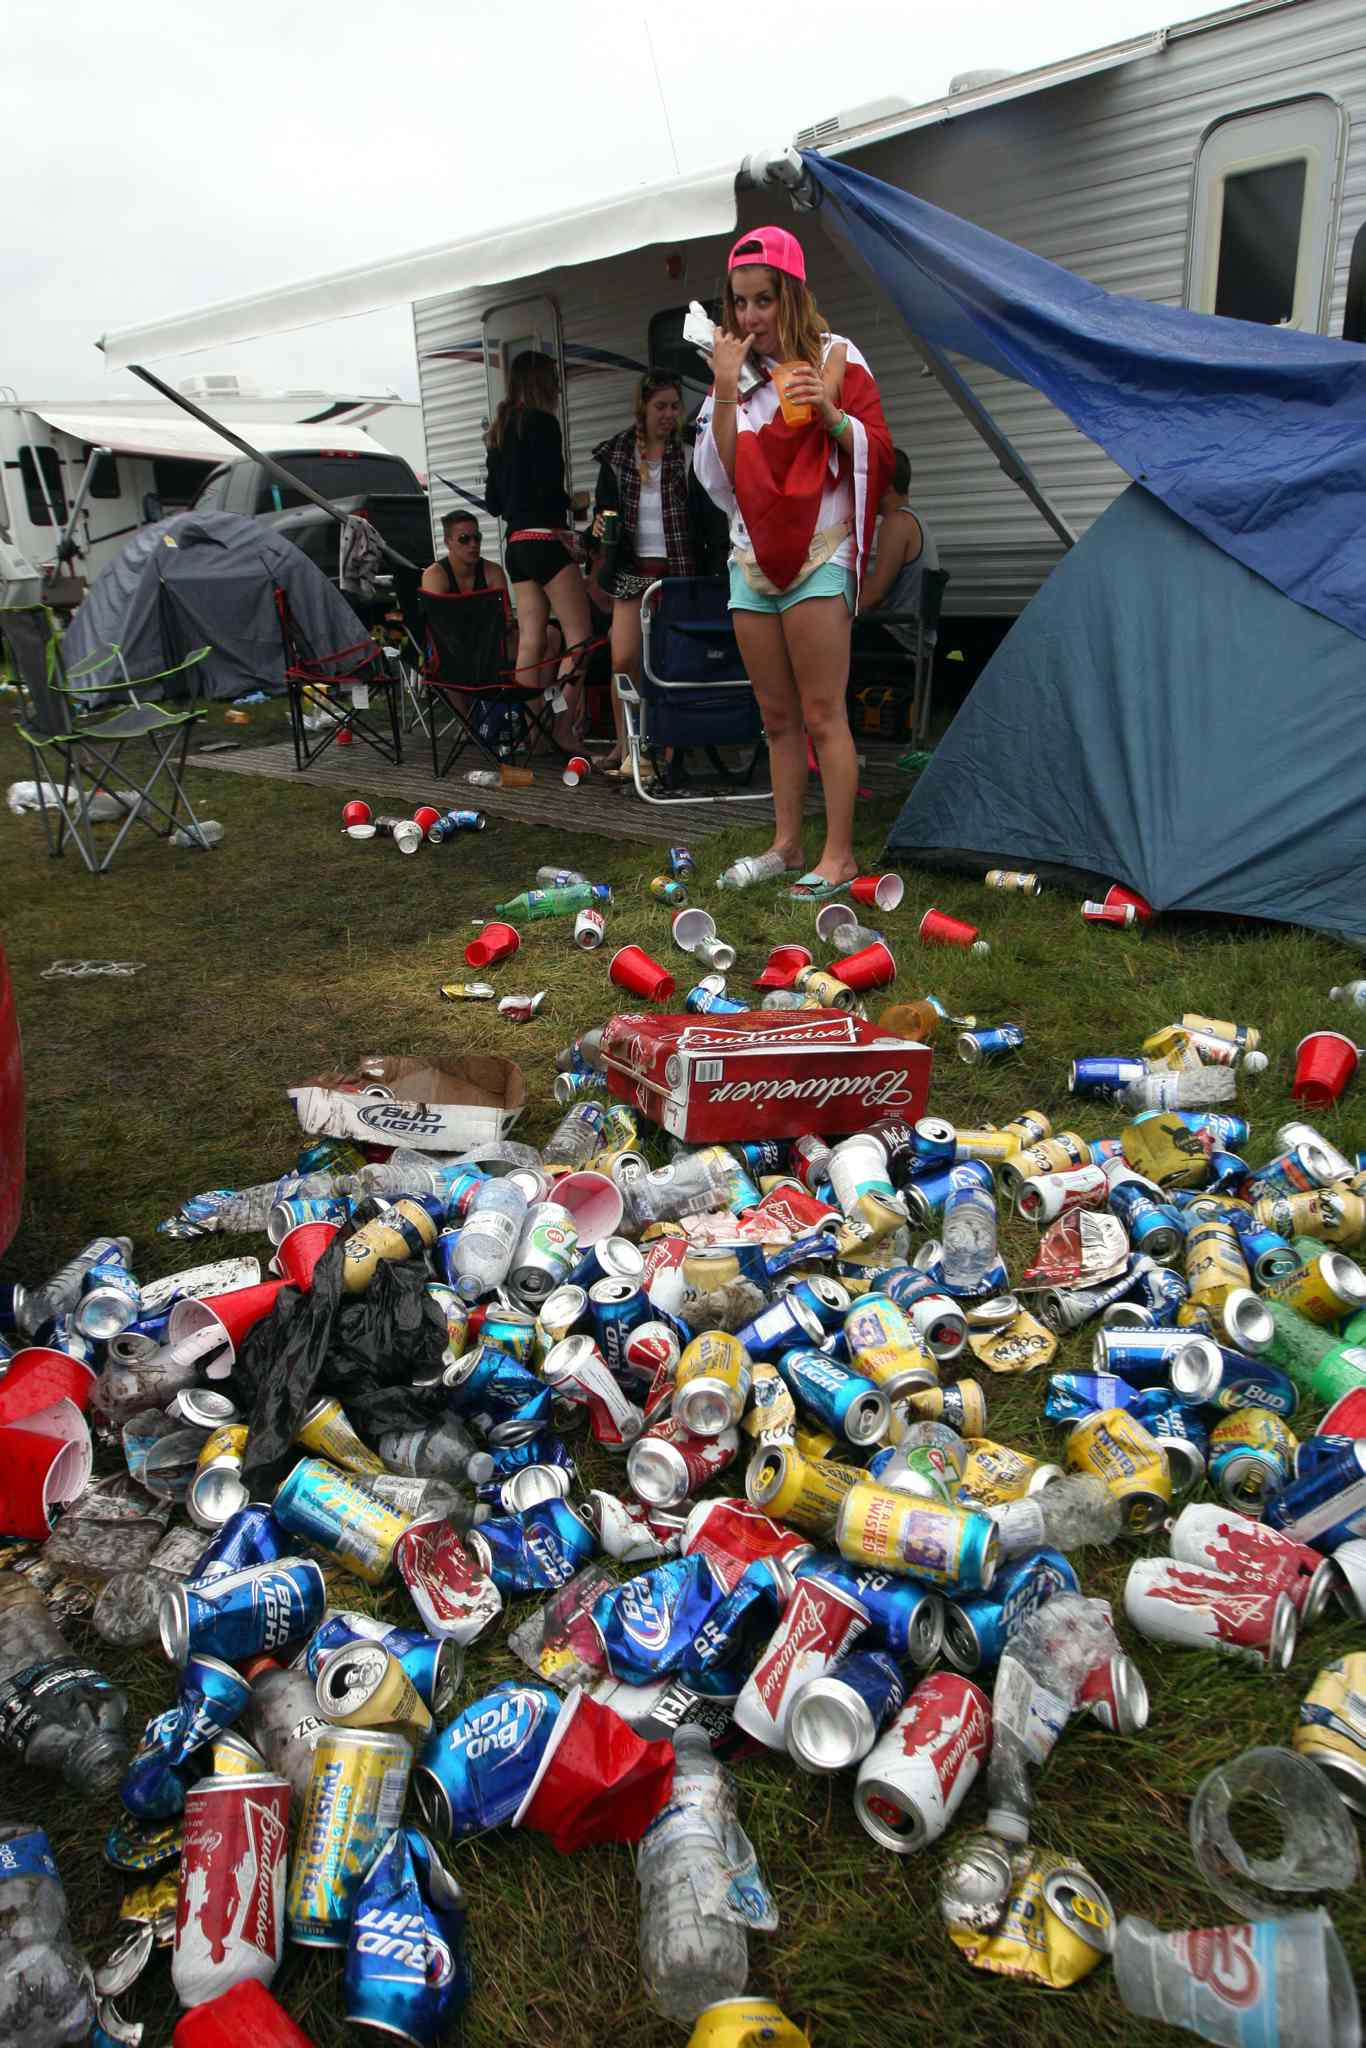 Festival goers killed some time during a rainy Saturday afternoon by drinking. Here are a few empties.